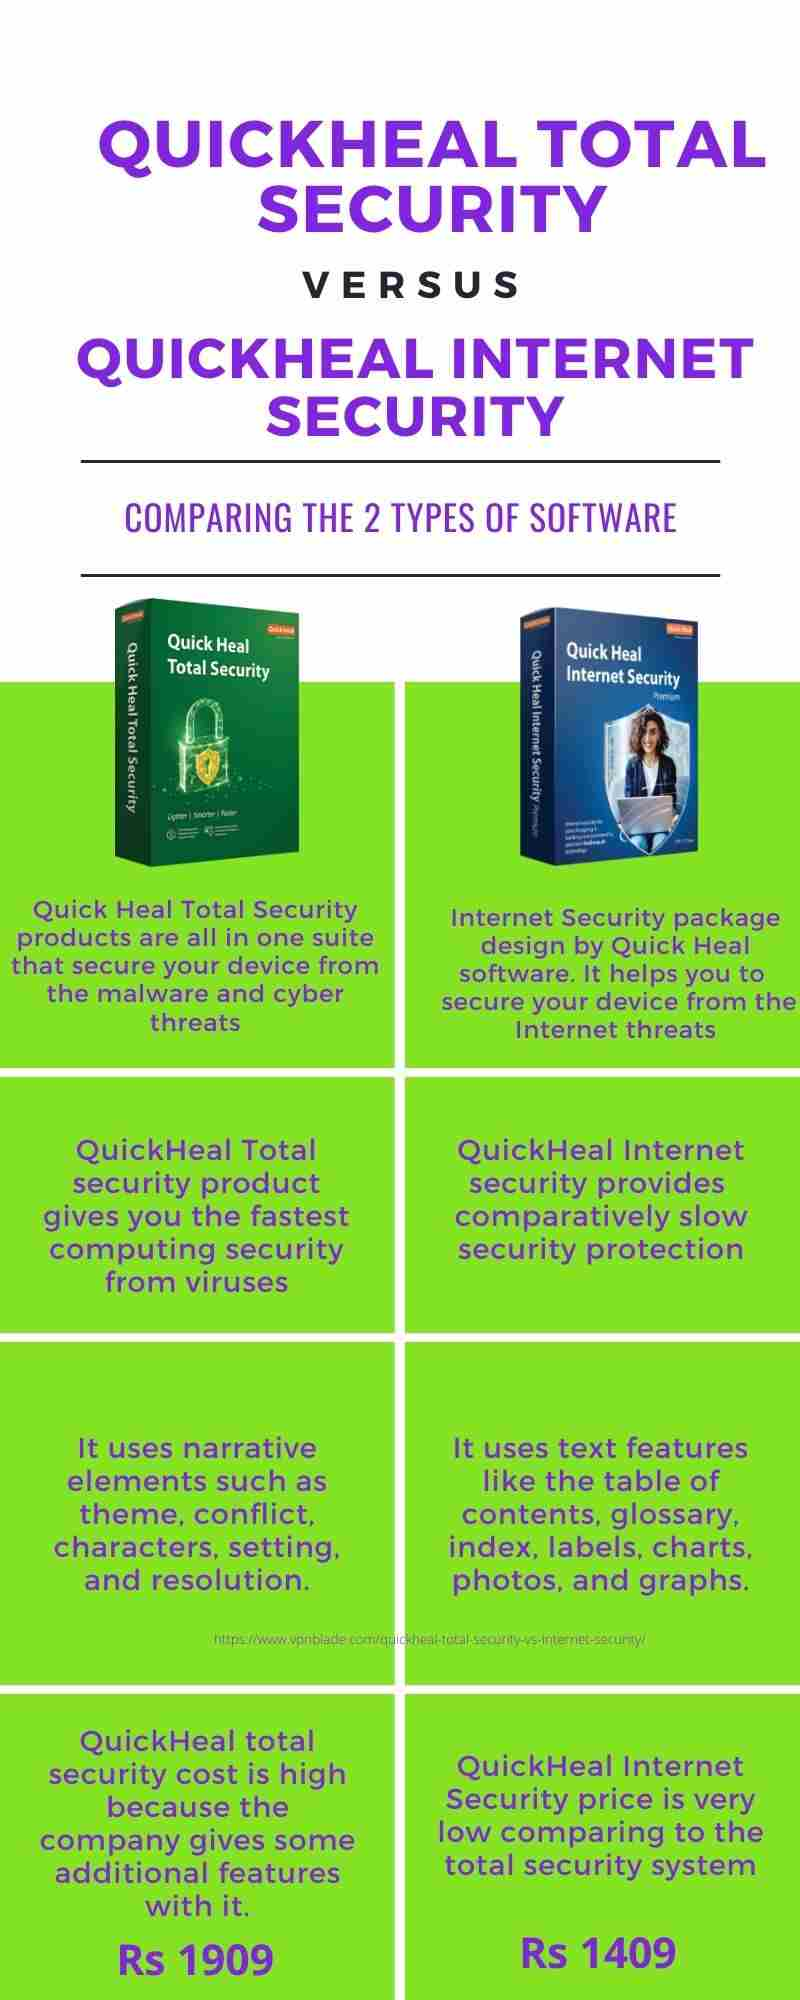 Difference between QuickHeal Total Security and Internet Security